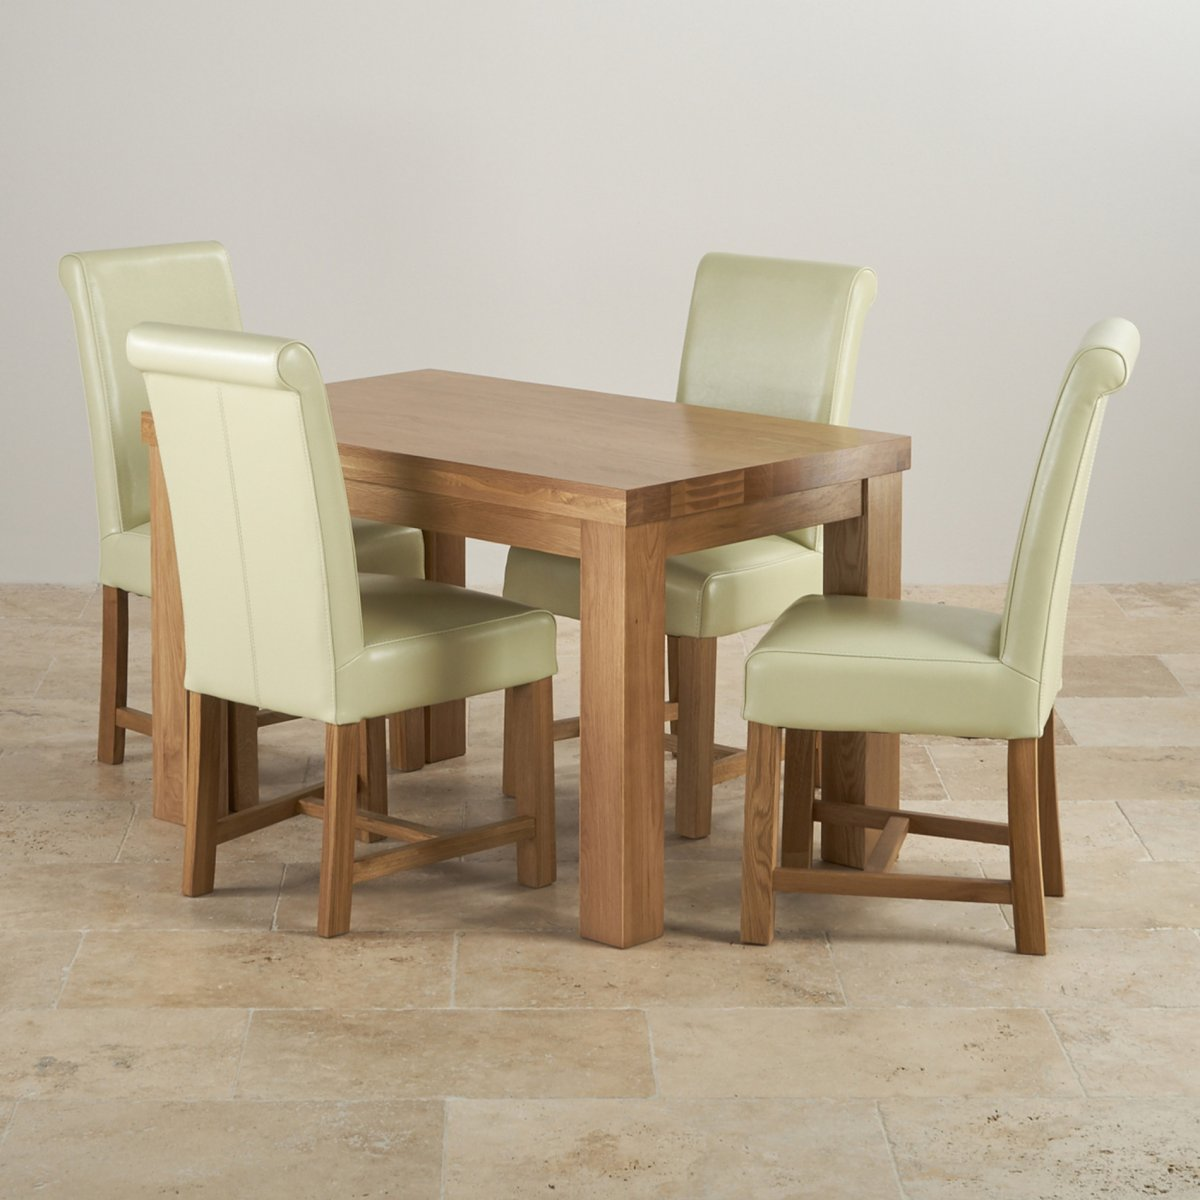 Set Of 4 Country Cream Dining Chairs: Fresco 4ft Solid Oak Dining Table 4 Cream Leather Braced